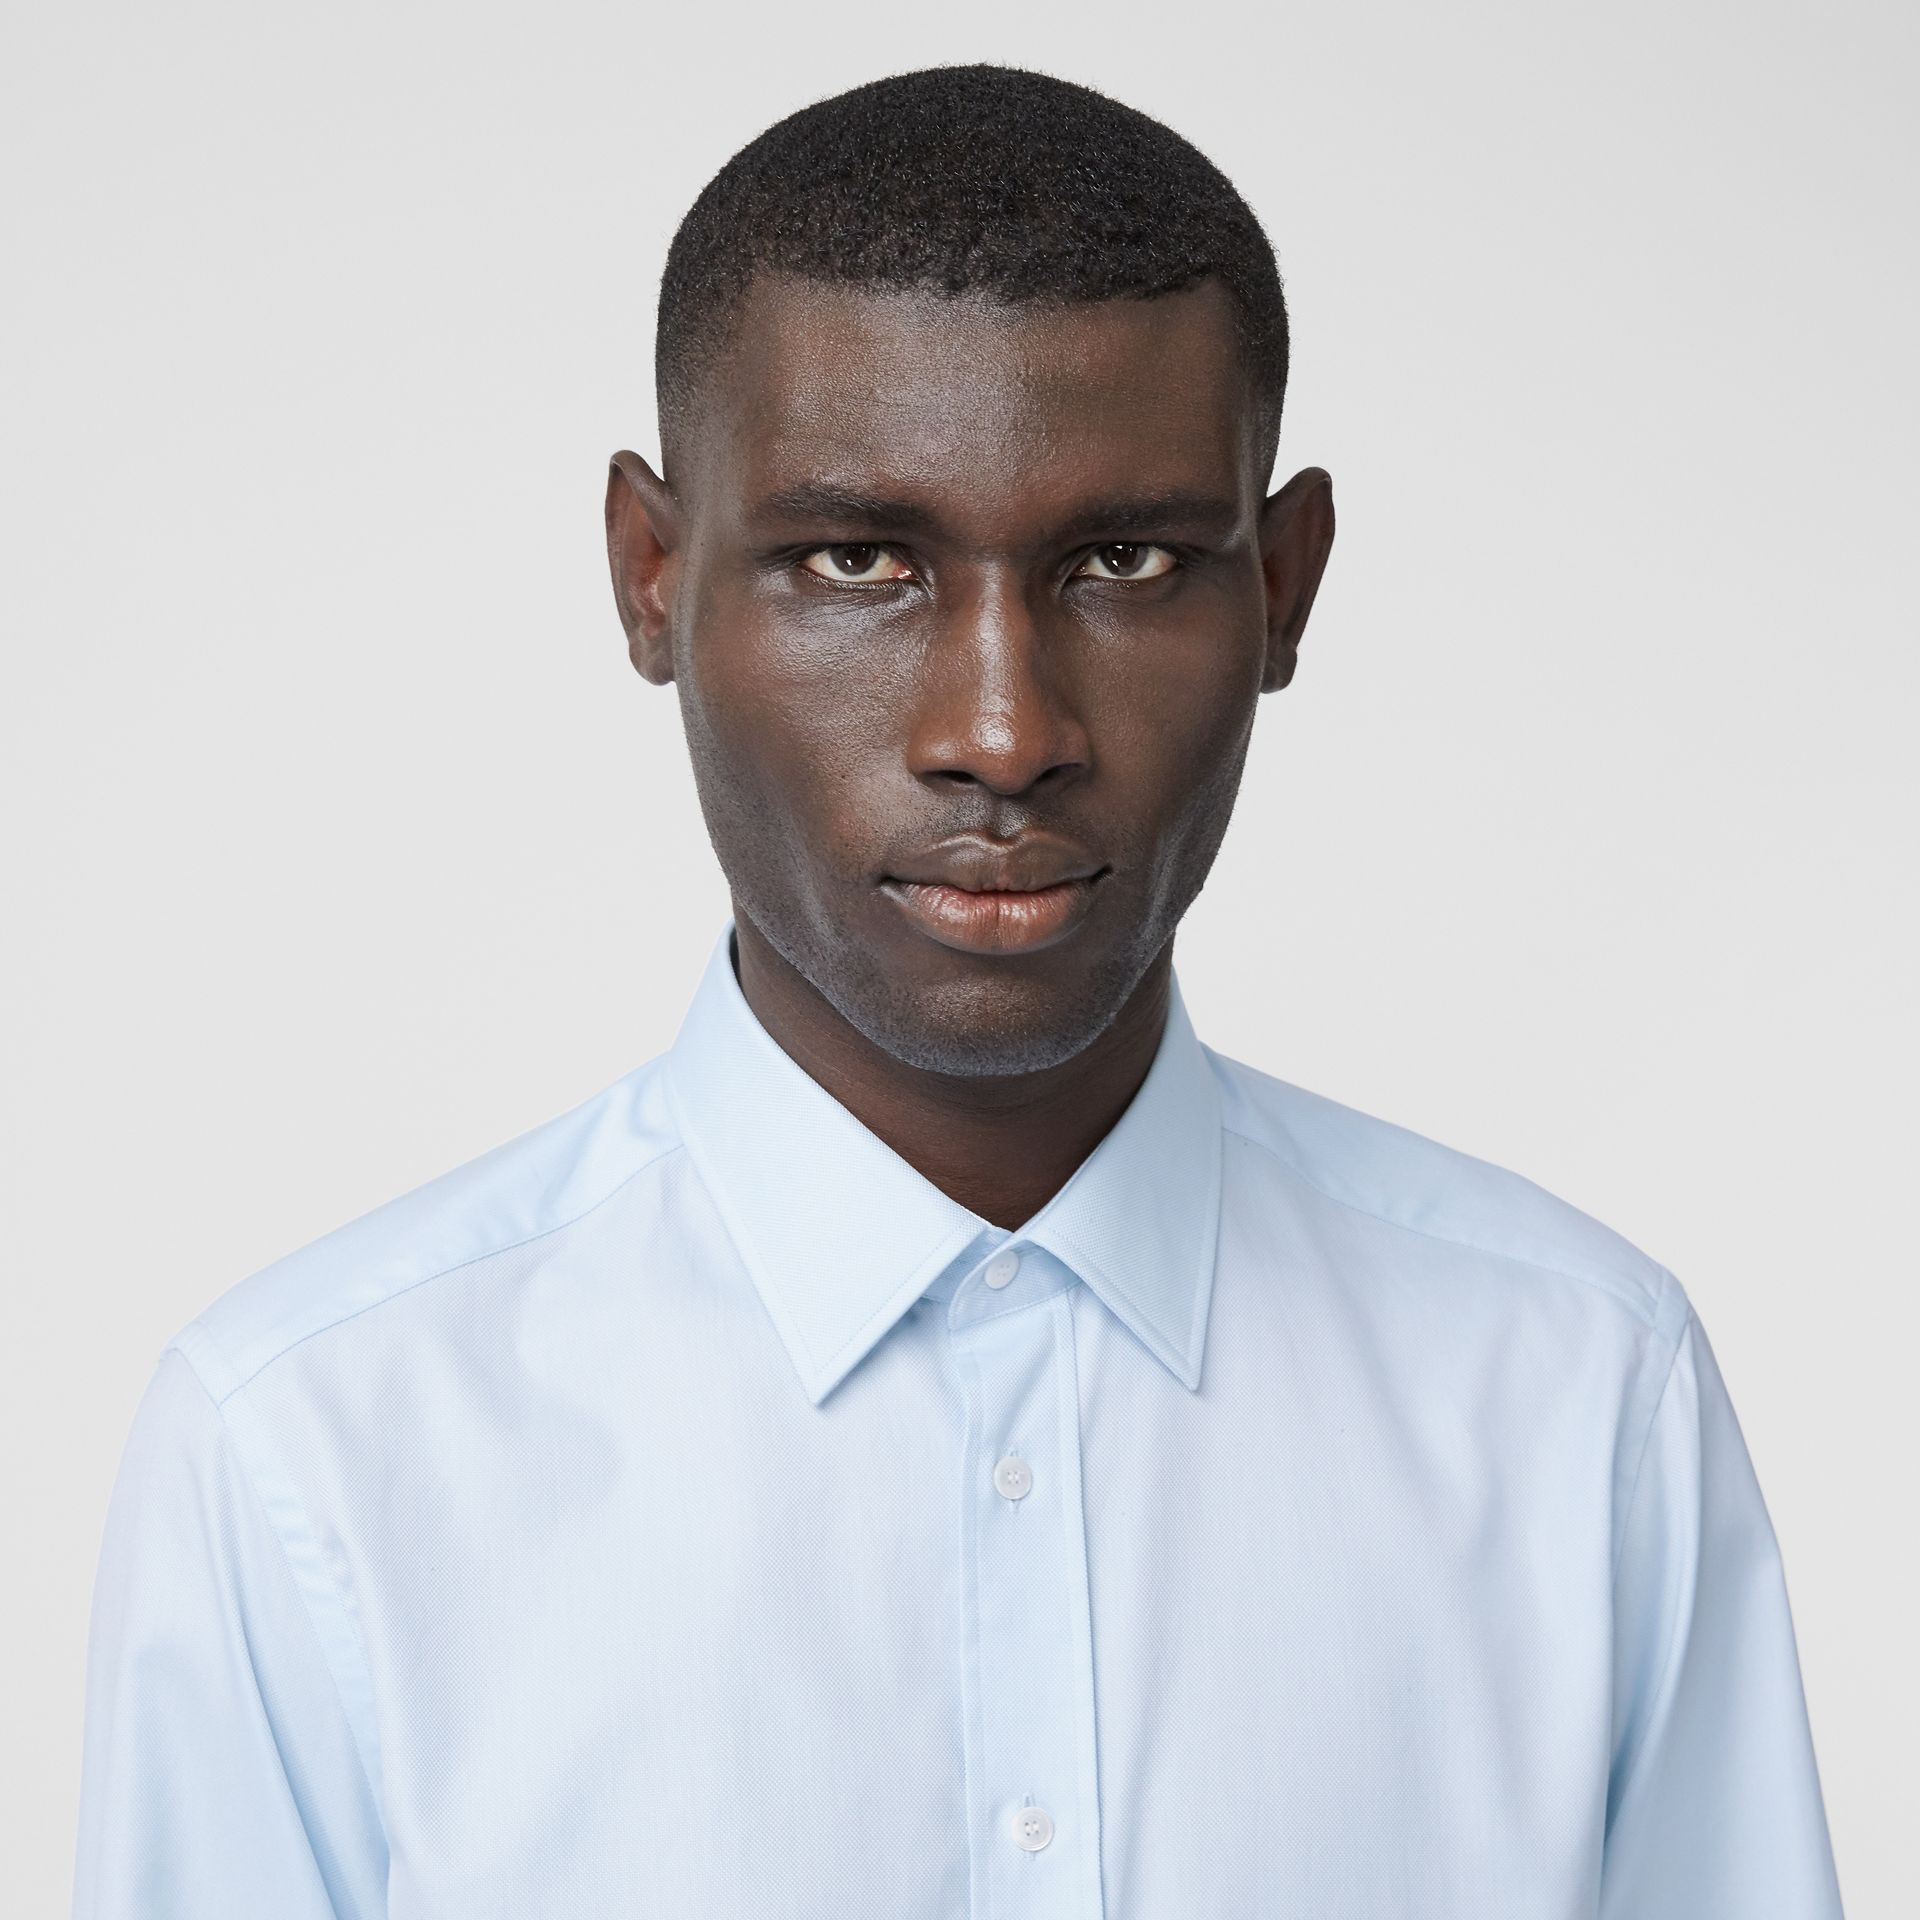 Classic Fit Monogram Motif Cotton Oxford Shirt in Pale Blue - Men | Burberry United Kingdom - gallery image 1